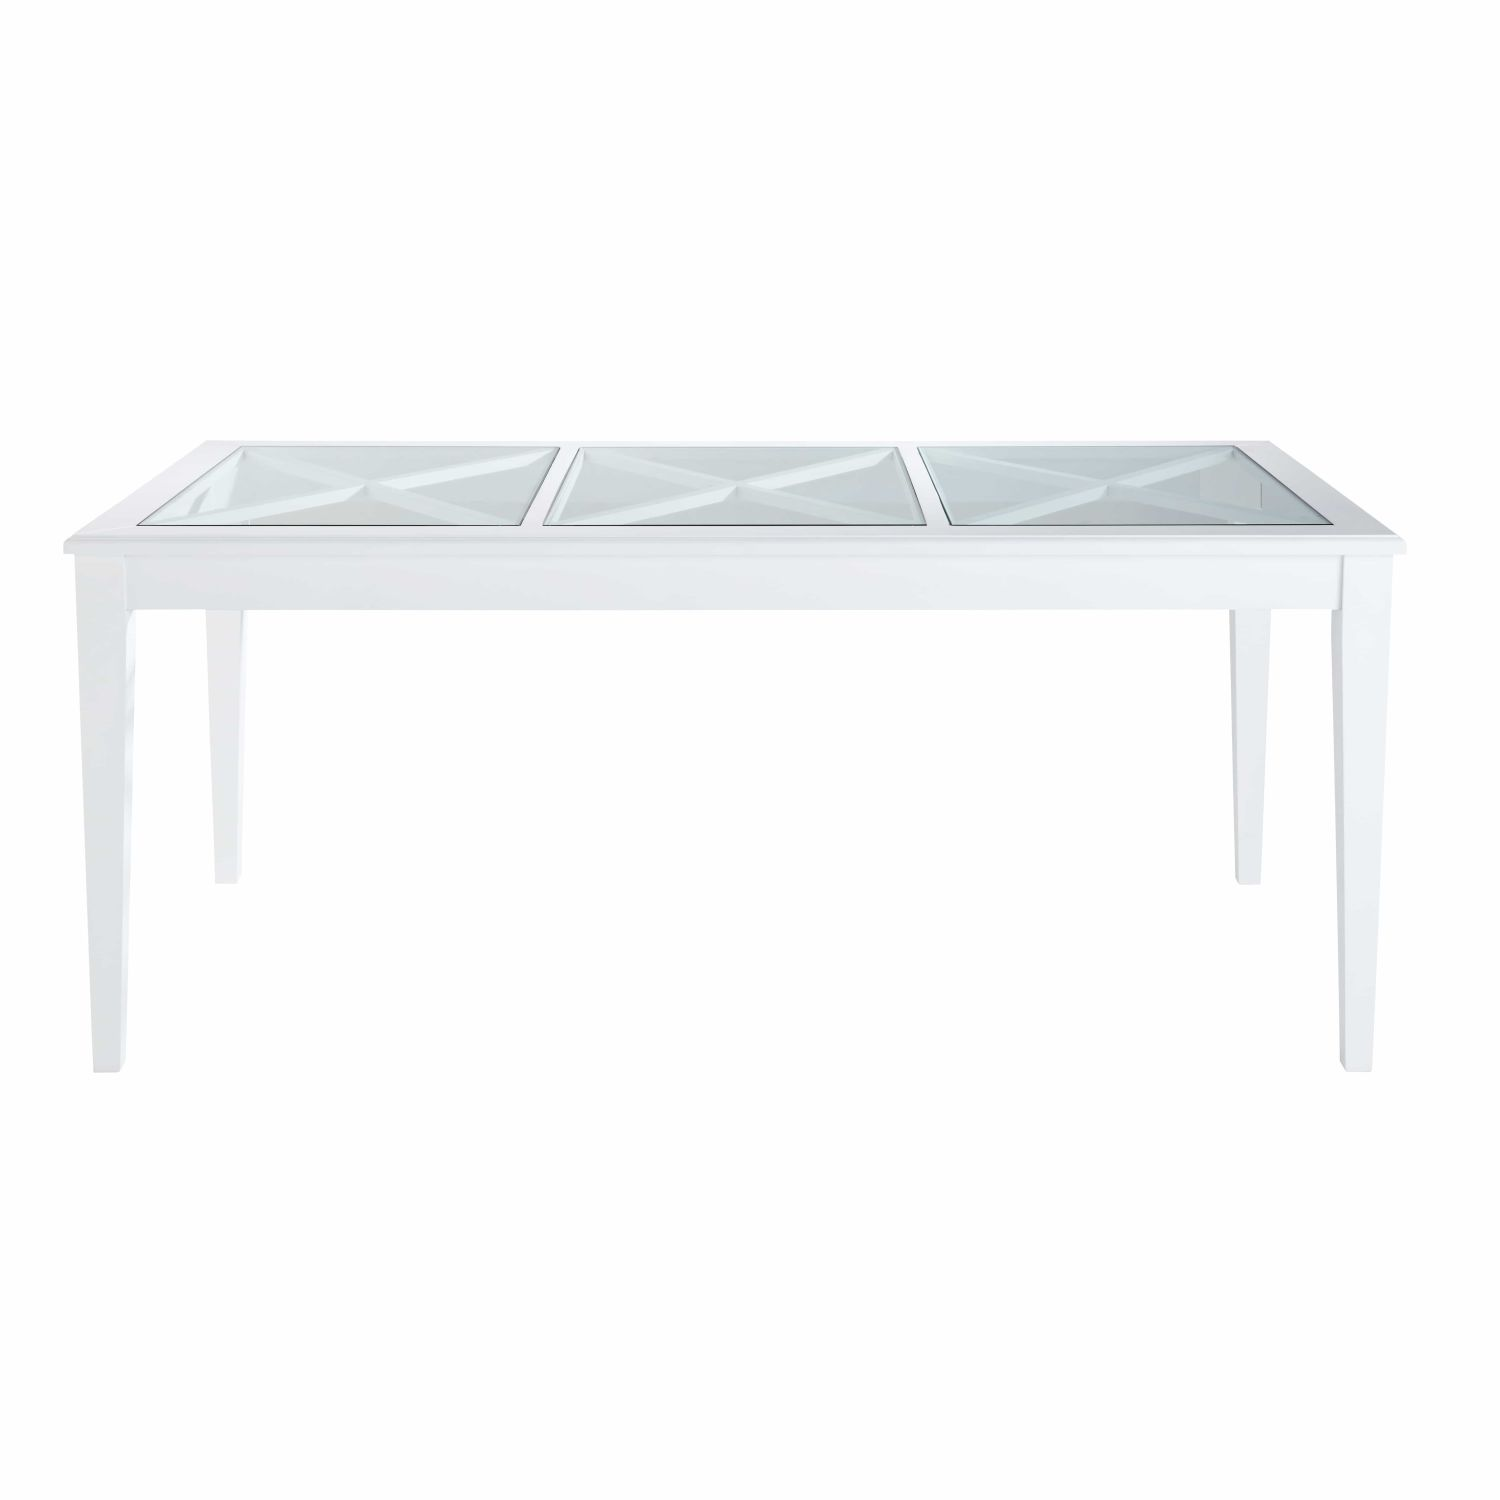 table manger en pin blanc et verre tremp 8 personnes l180 maisons du monde. Black Bedroom Furniture Sets. Home Design Ideas